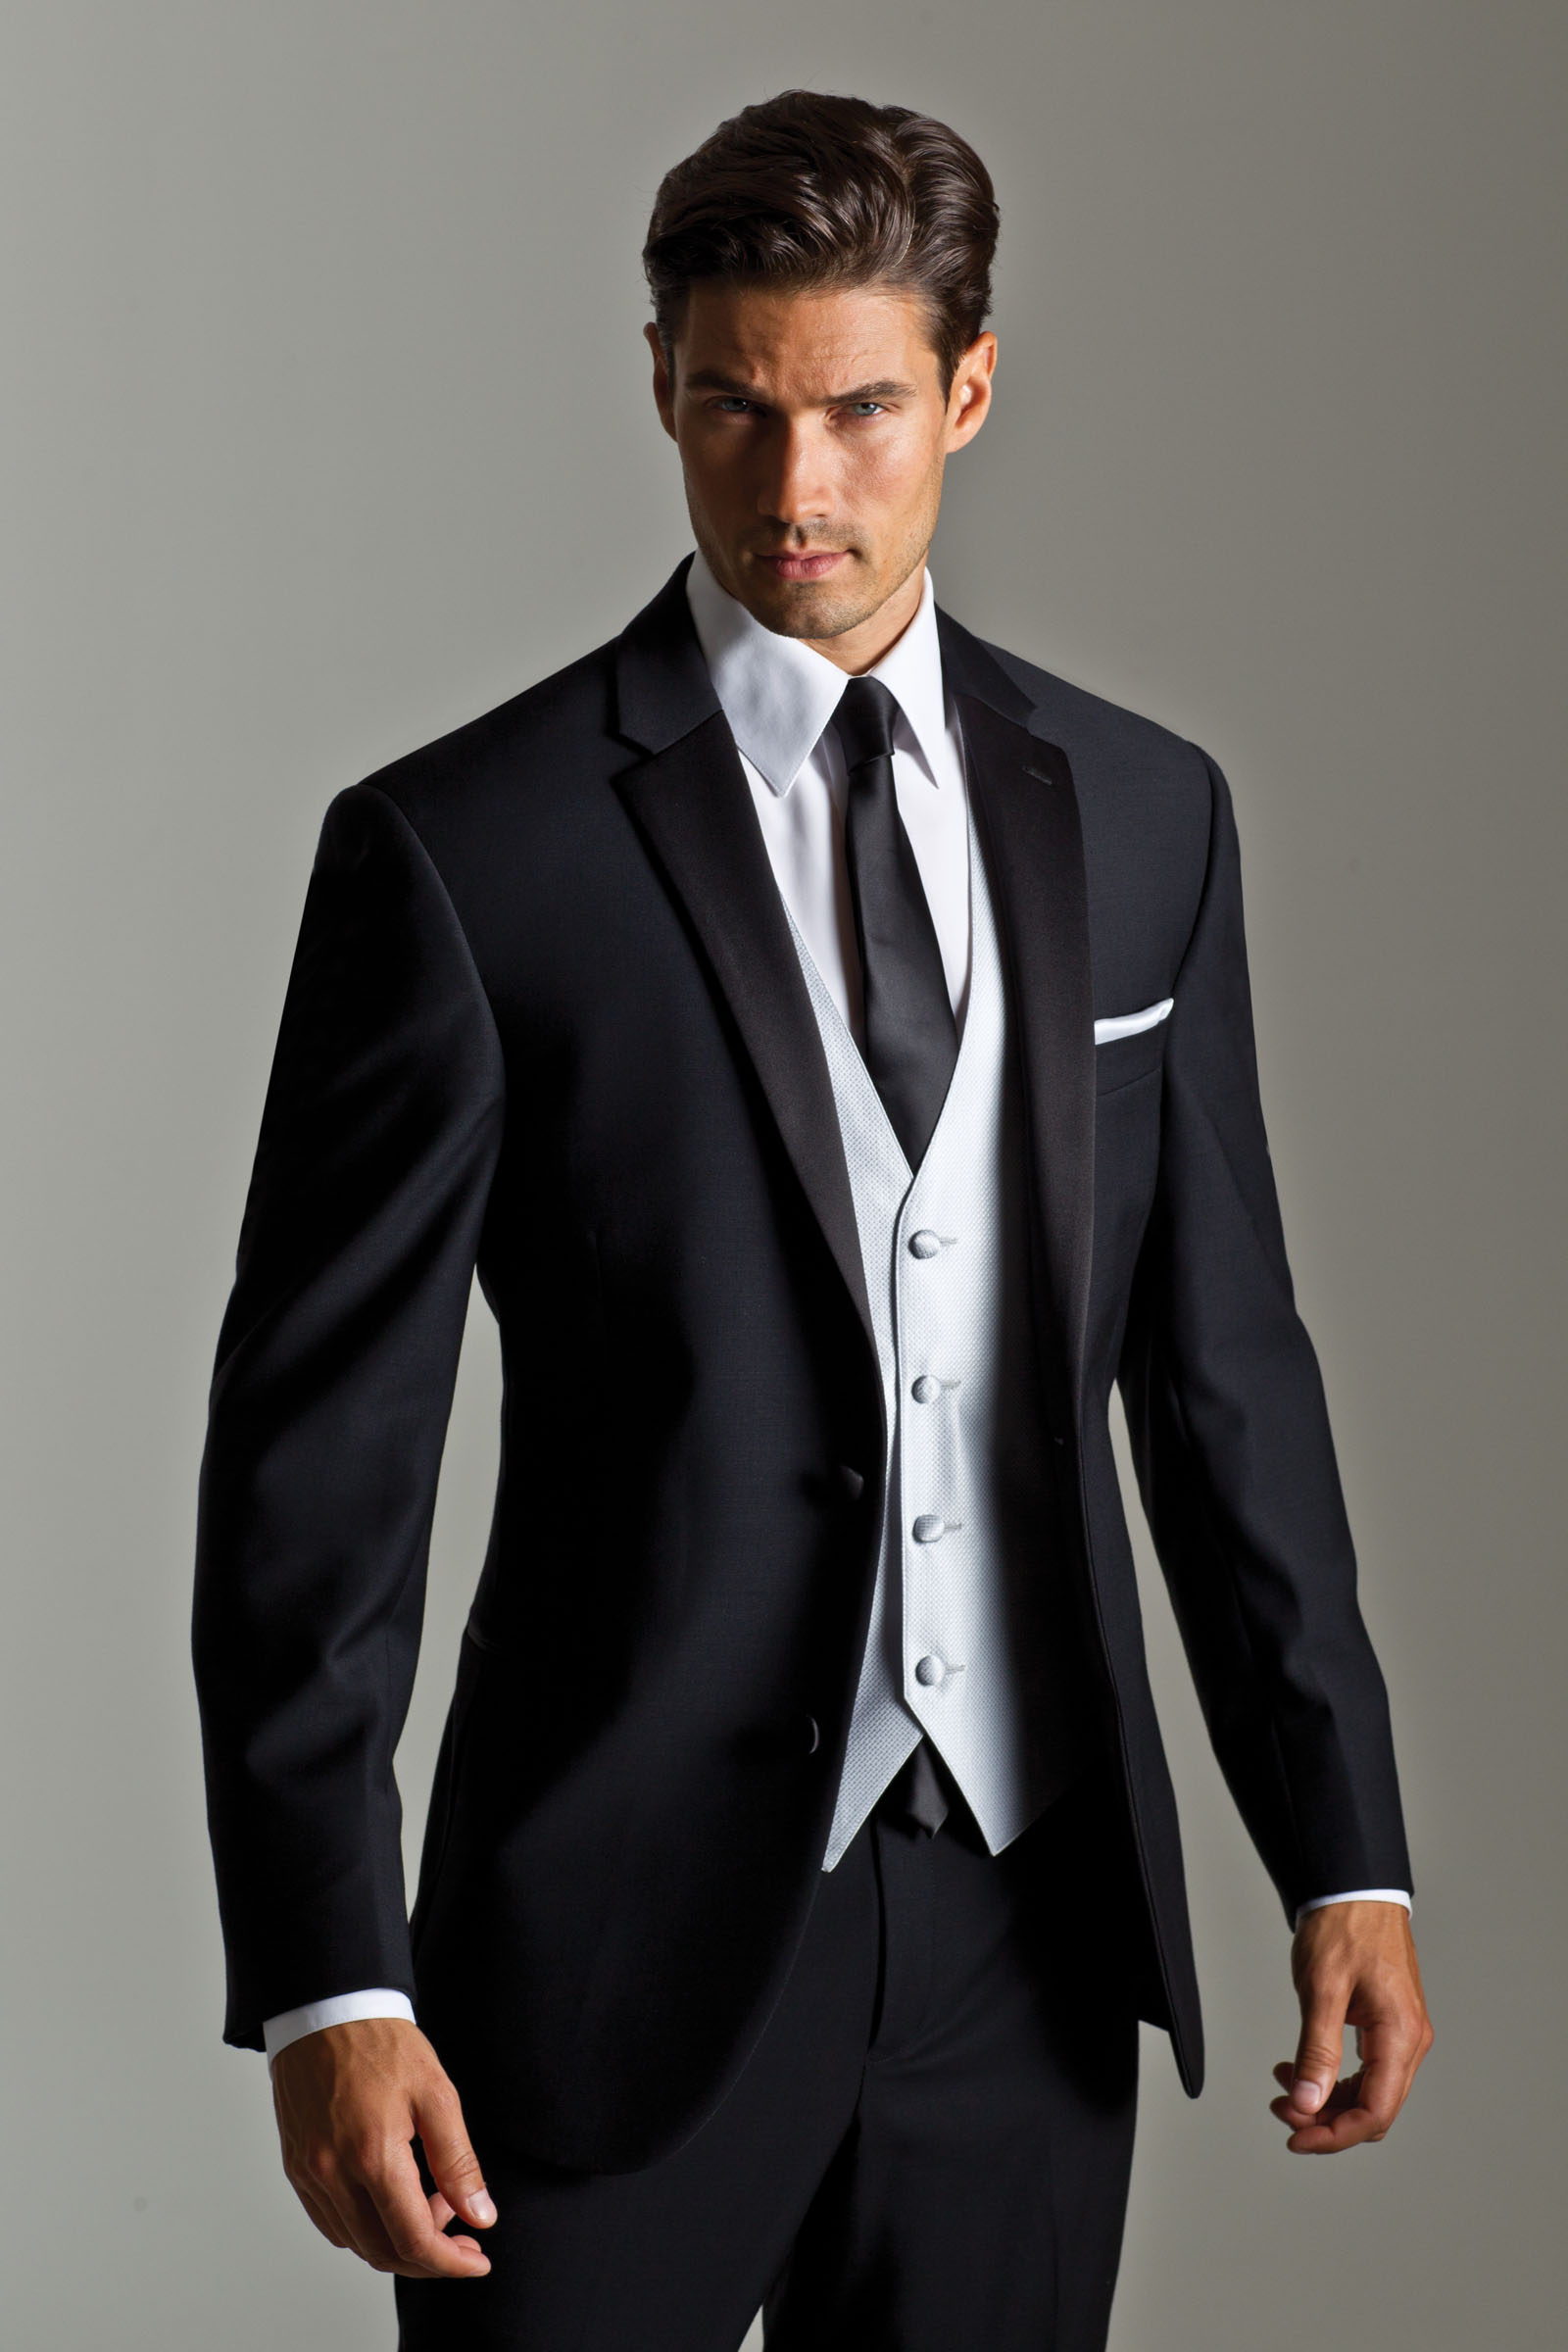 Wedding Tuxedos: Cheap or Expensive? – careyfashion.com